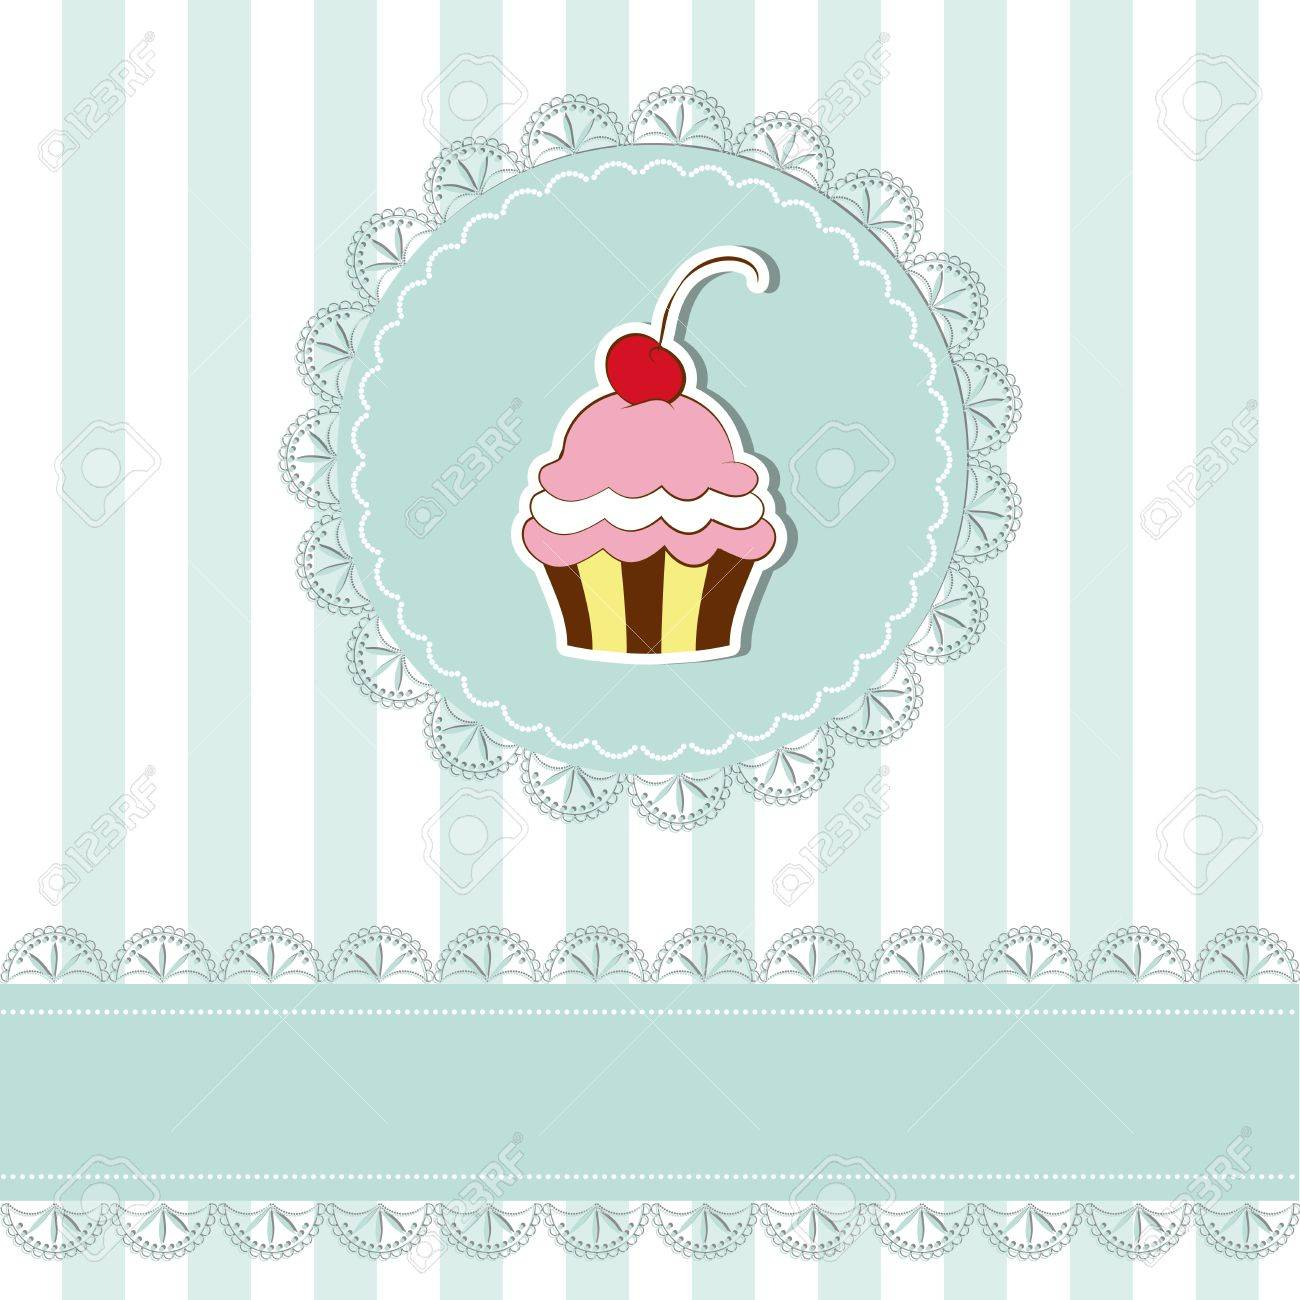 cherry cupcake invitation card on seamless pattern background